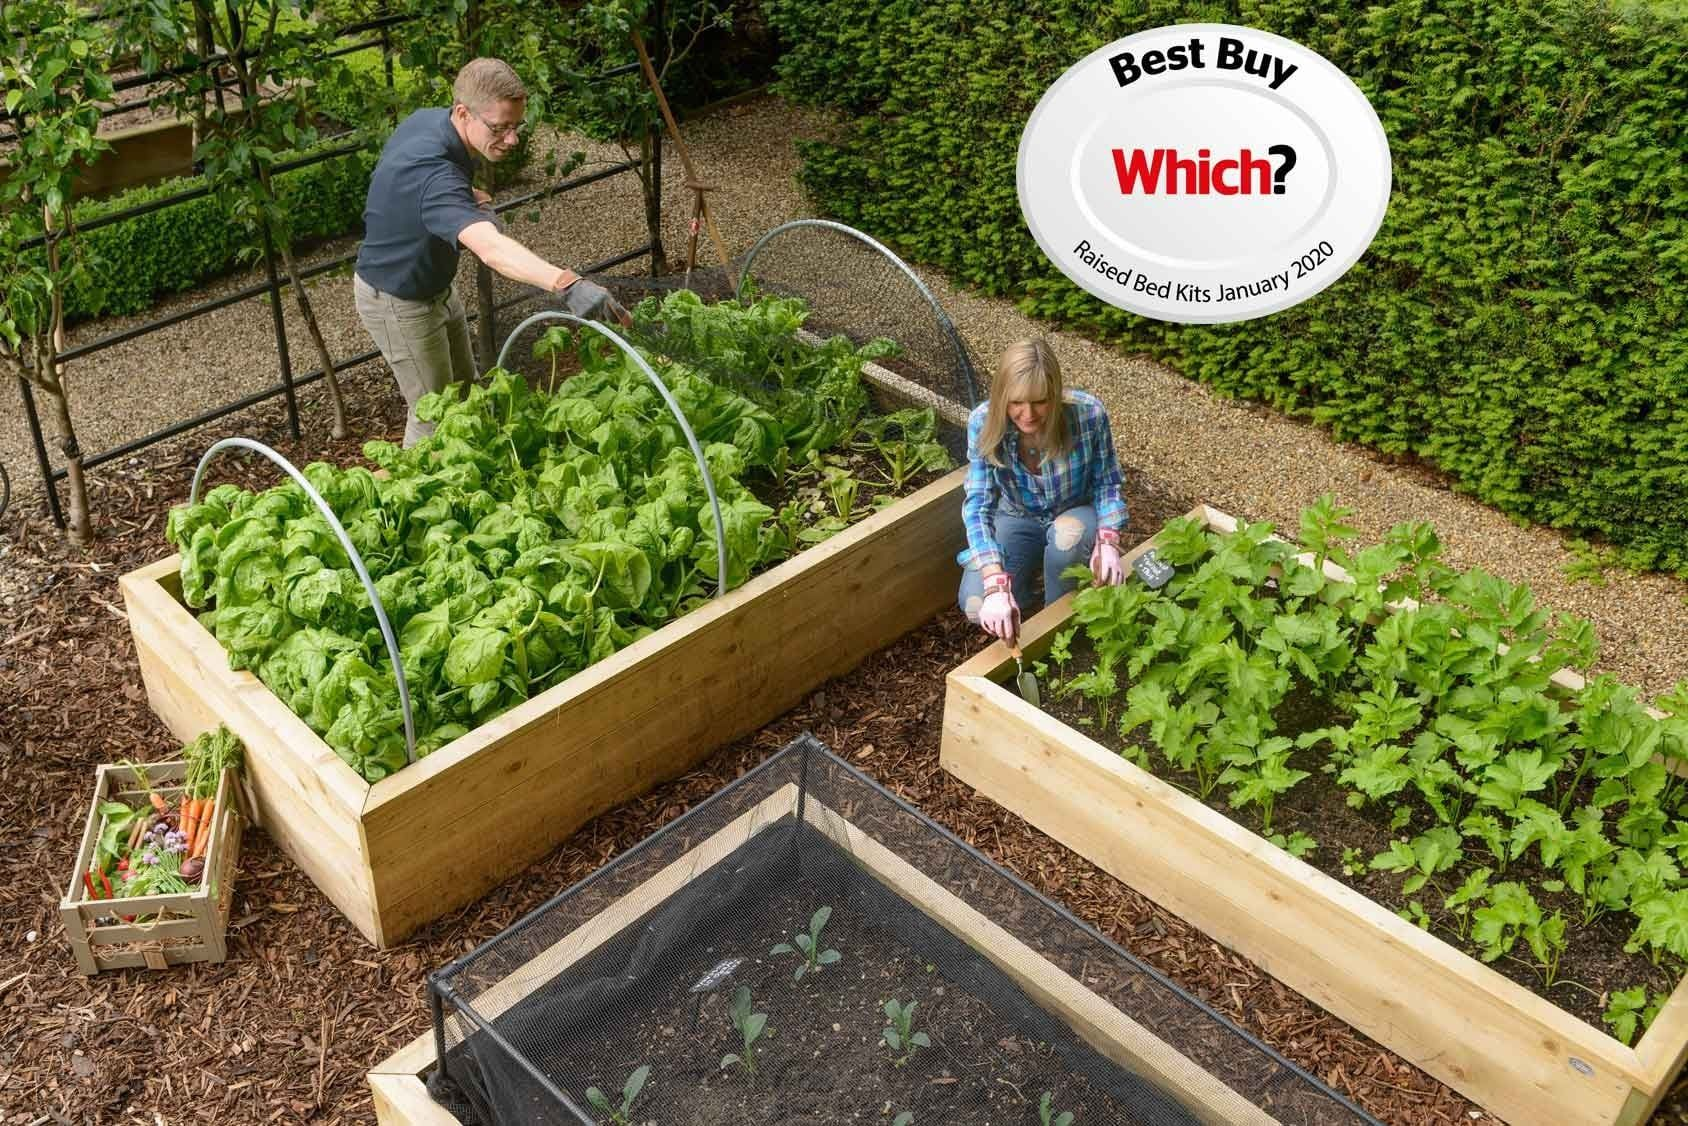 Standard Wooden Raised Beds Raised Garden Beds Raised Beds